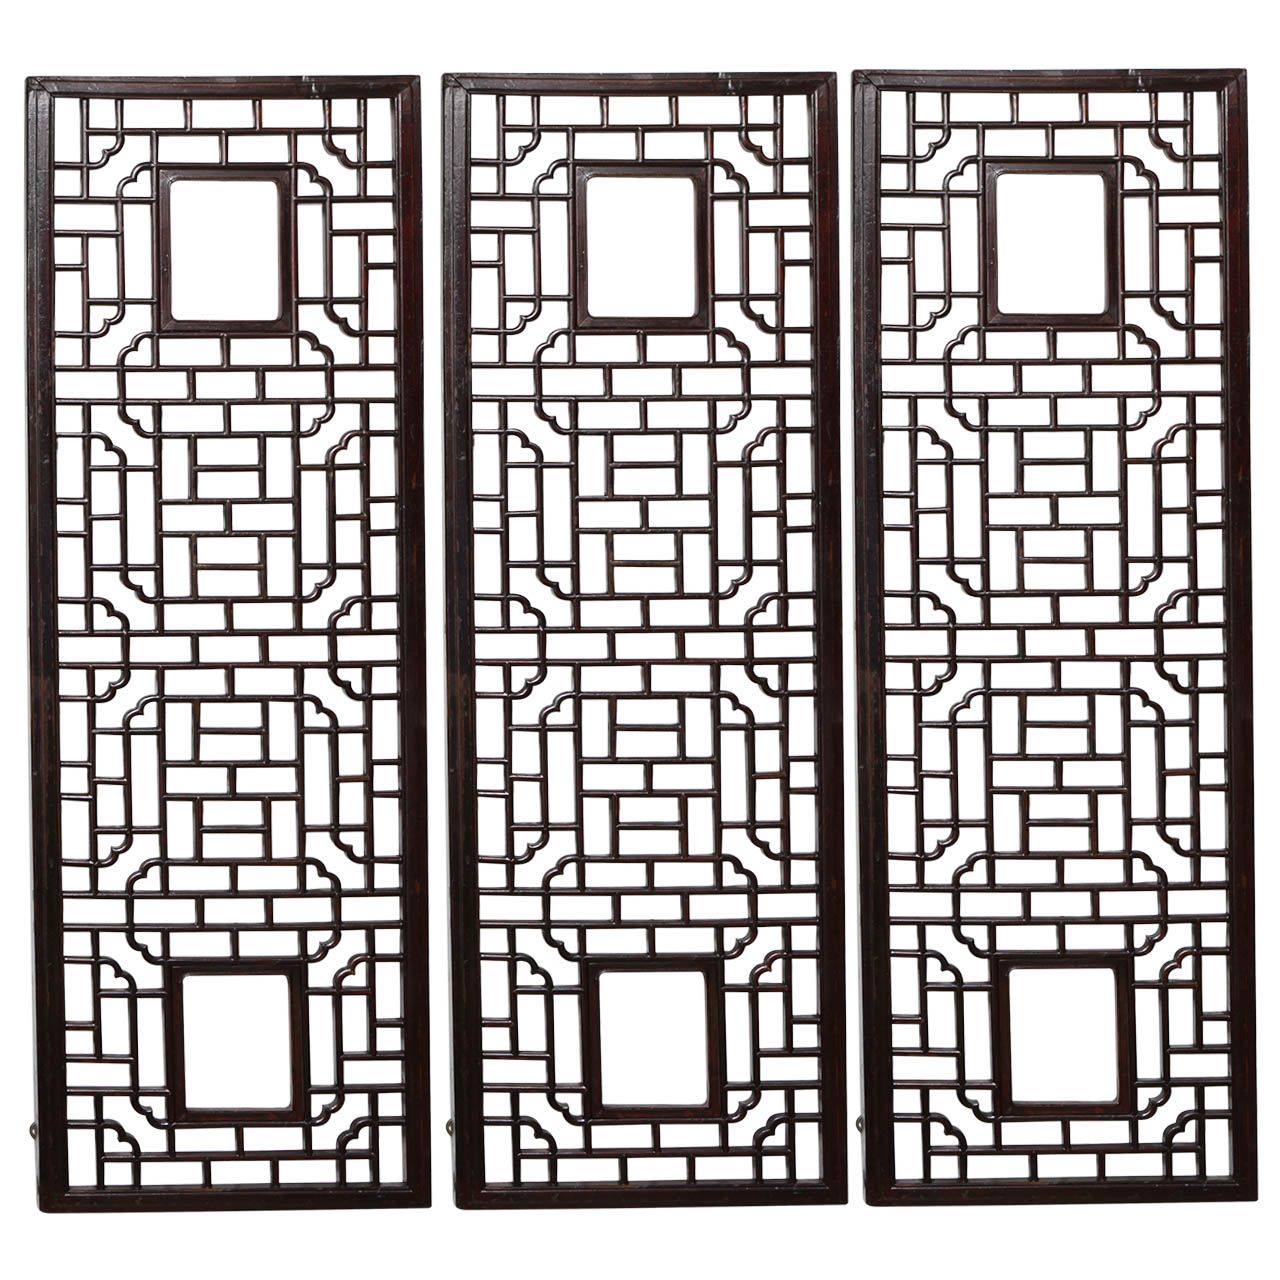 Exquisite Wall Coverings From China: Chinese Lattice Wall Panels In 2019